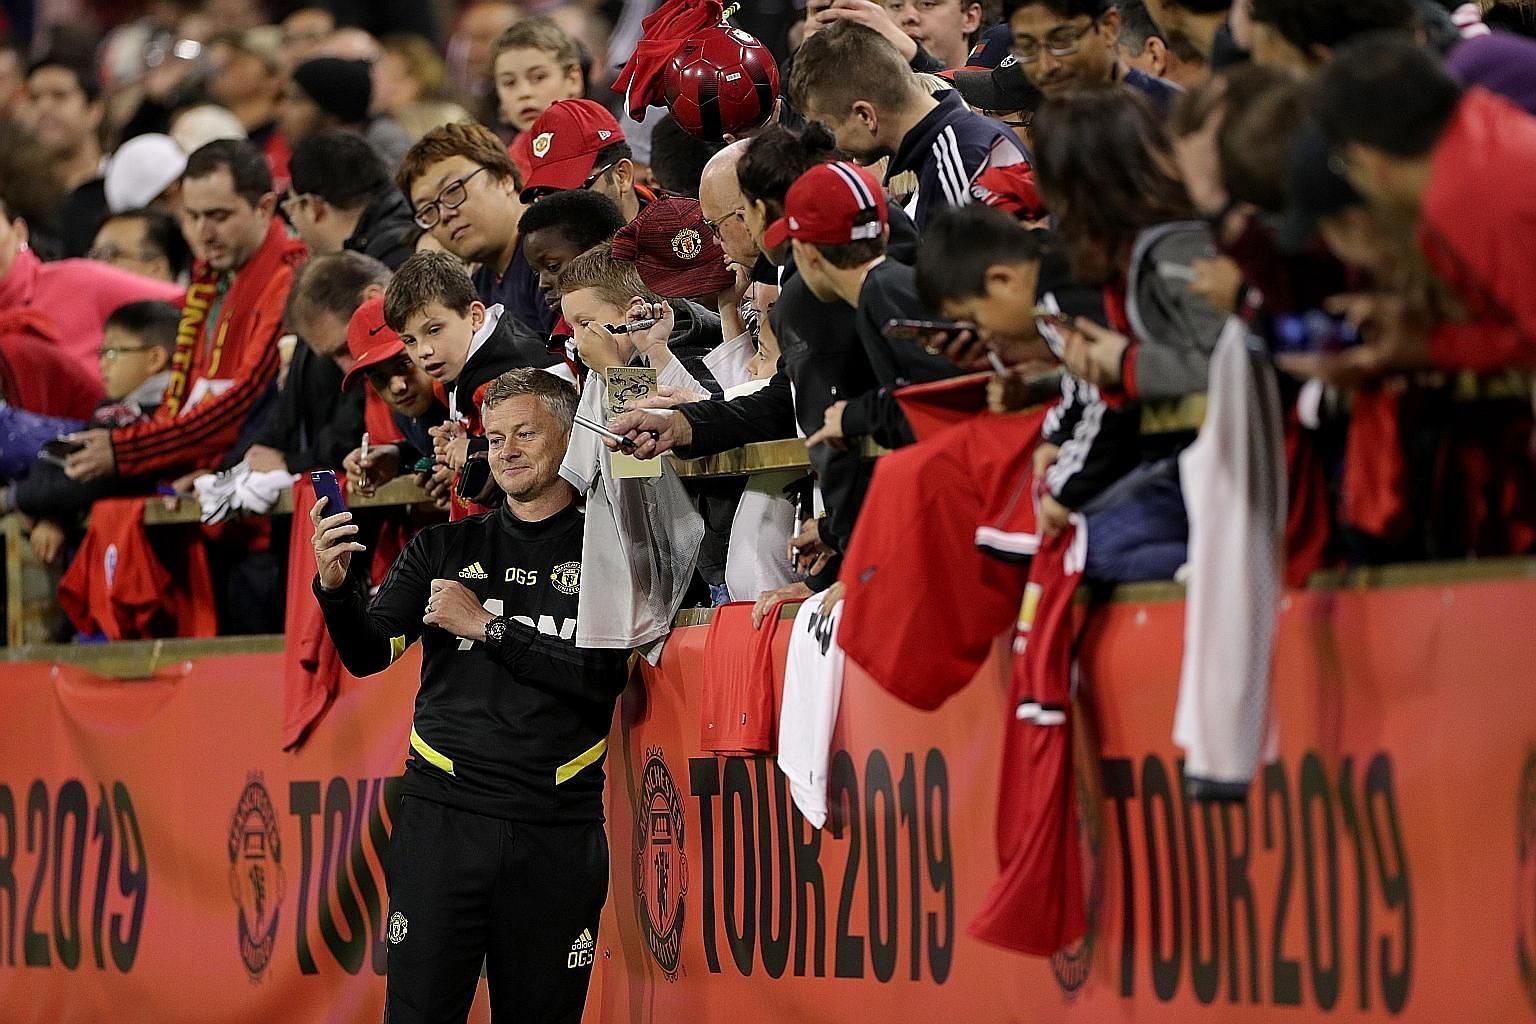 Manchester United manager Ole Gunnar Solskjaer obliging fans with a photo after training at the Perth Stadium. The English Premier League club is touring Australia and will play Leeds United today before heading to Singapore.